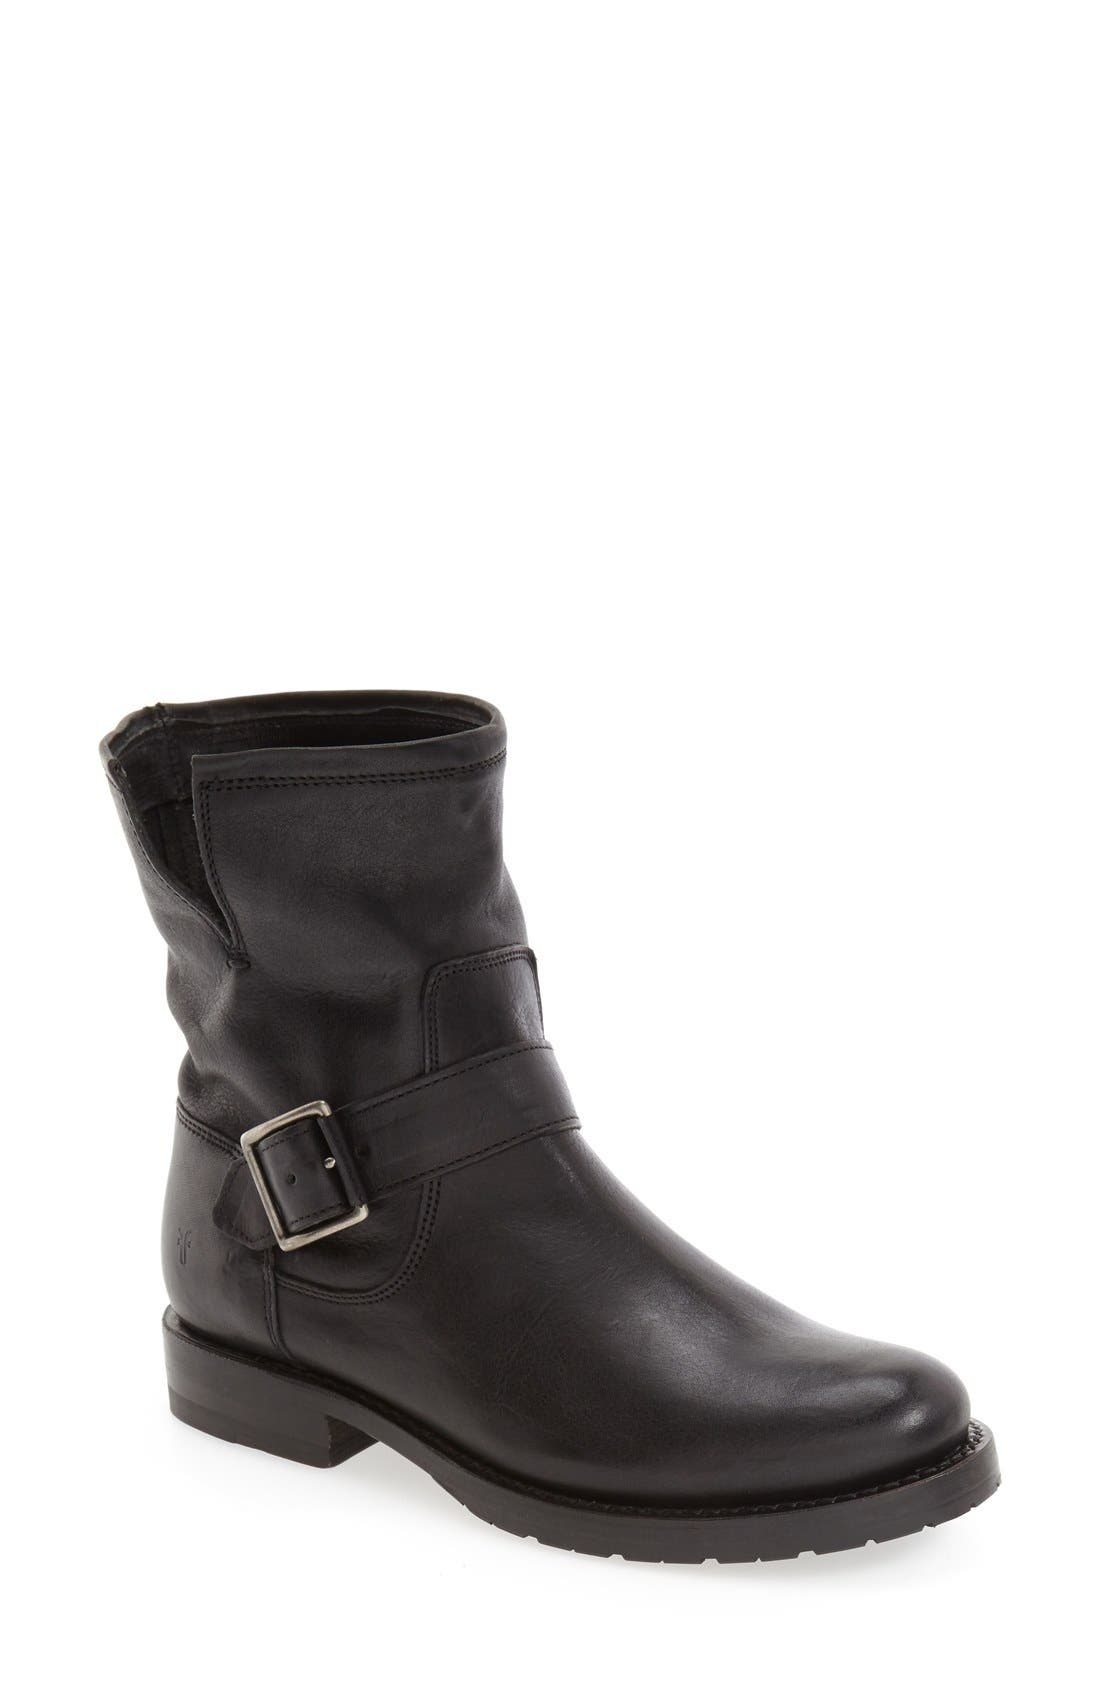 'Natalie' Engineer Boot,                         Main,                         color, 001